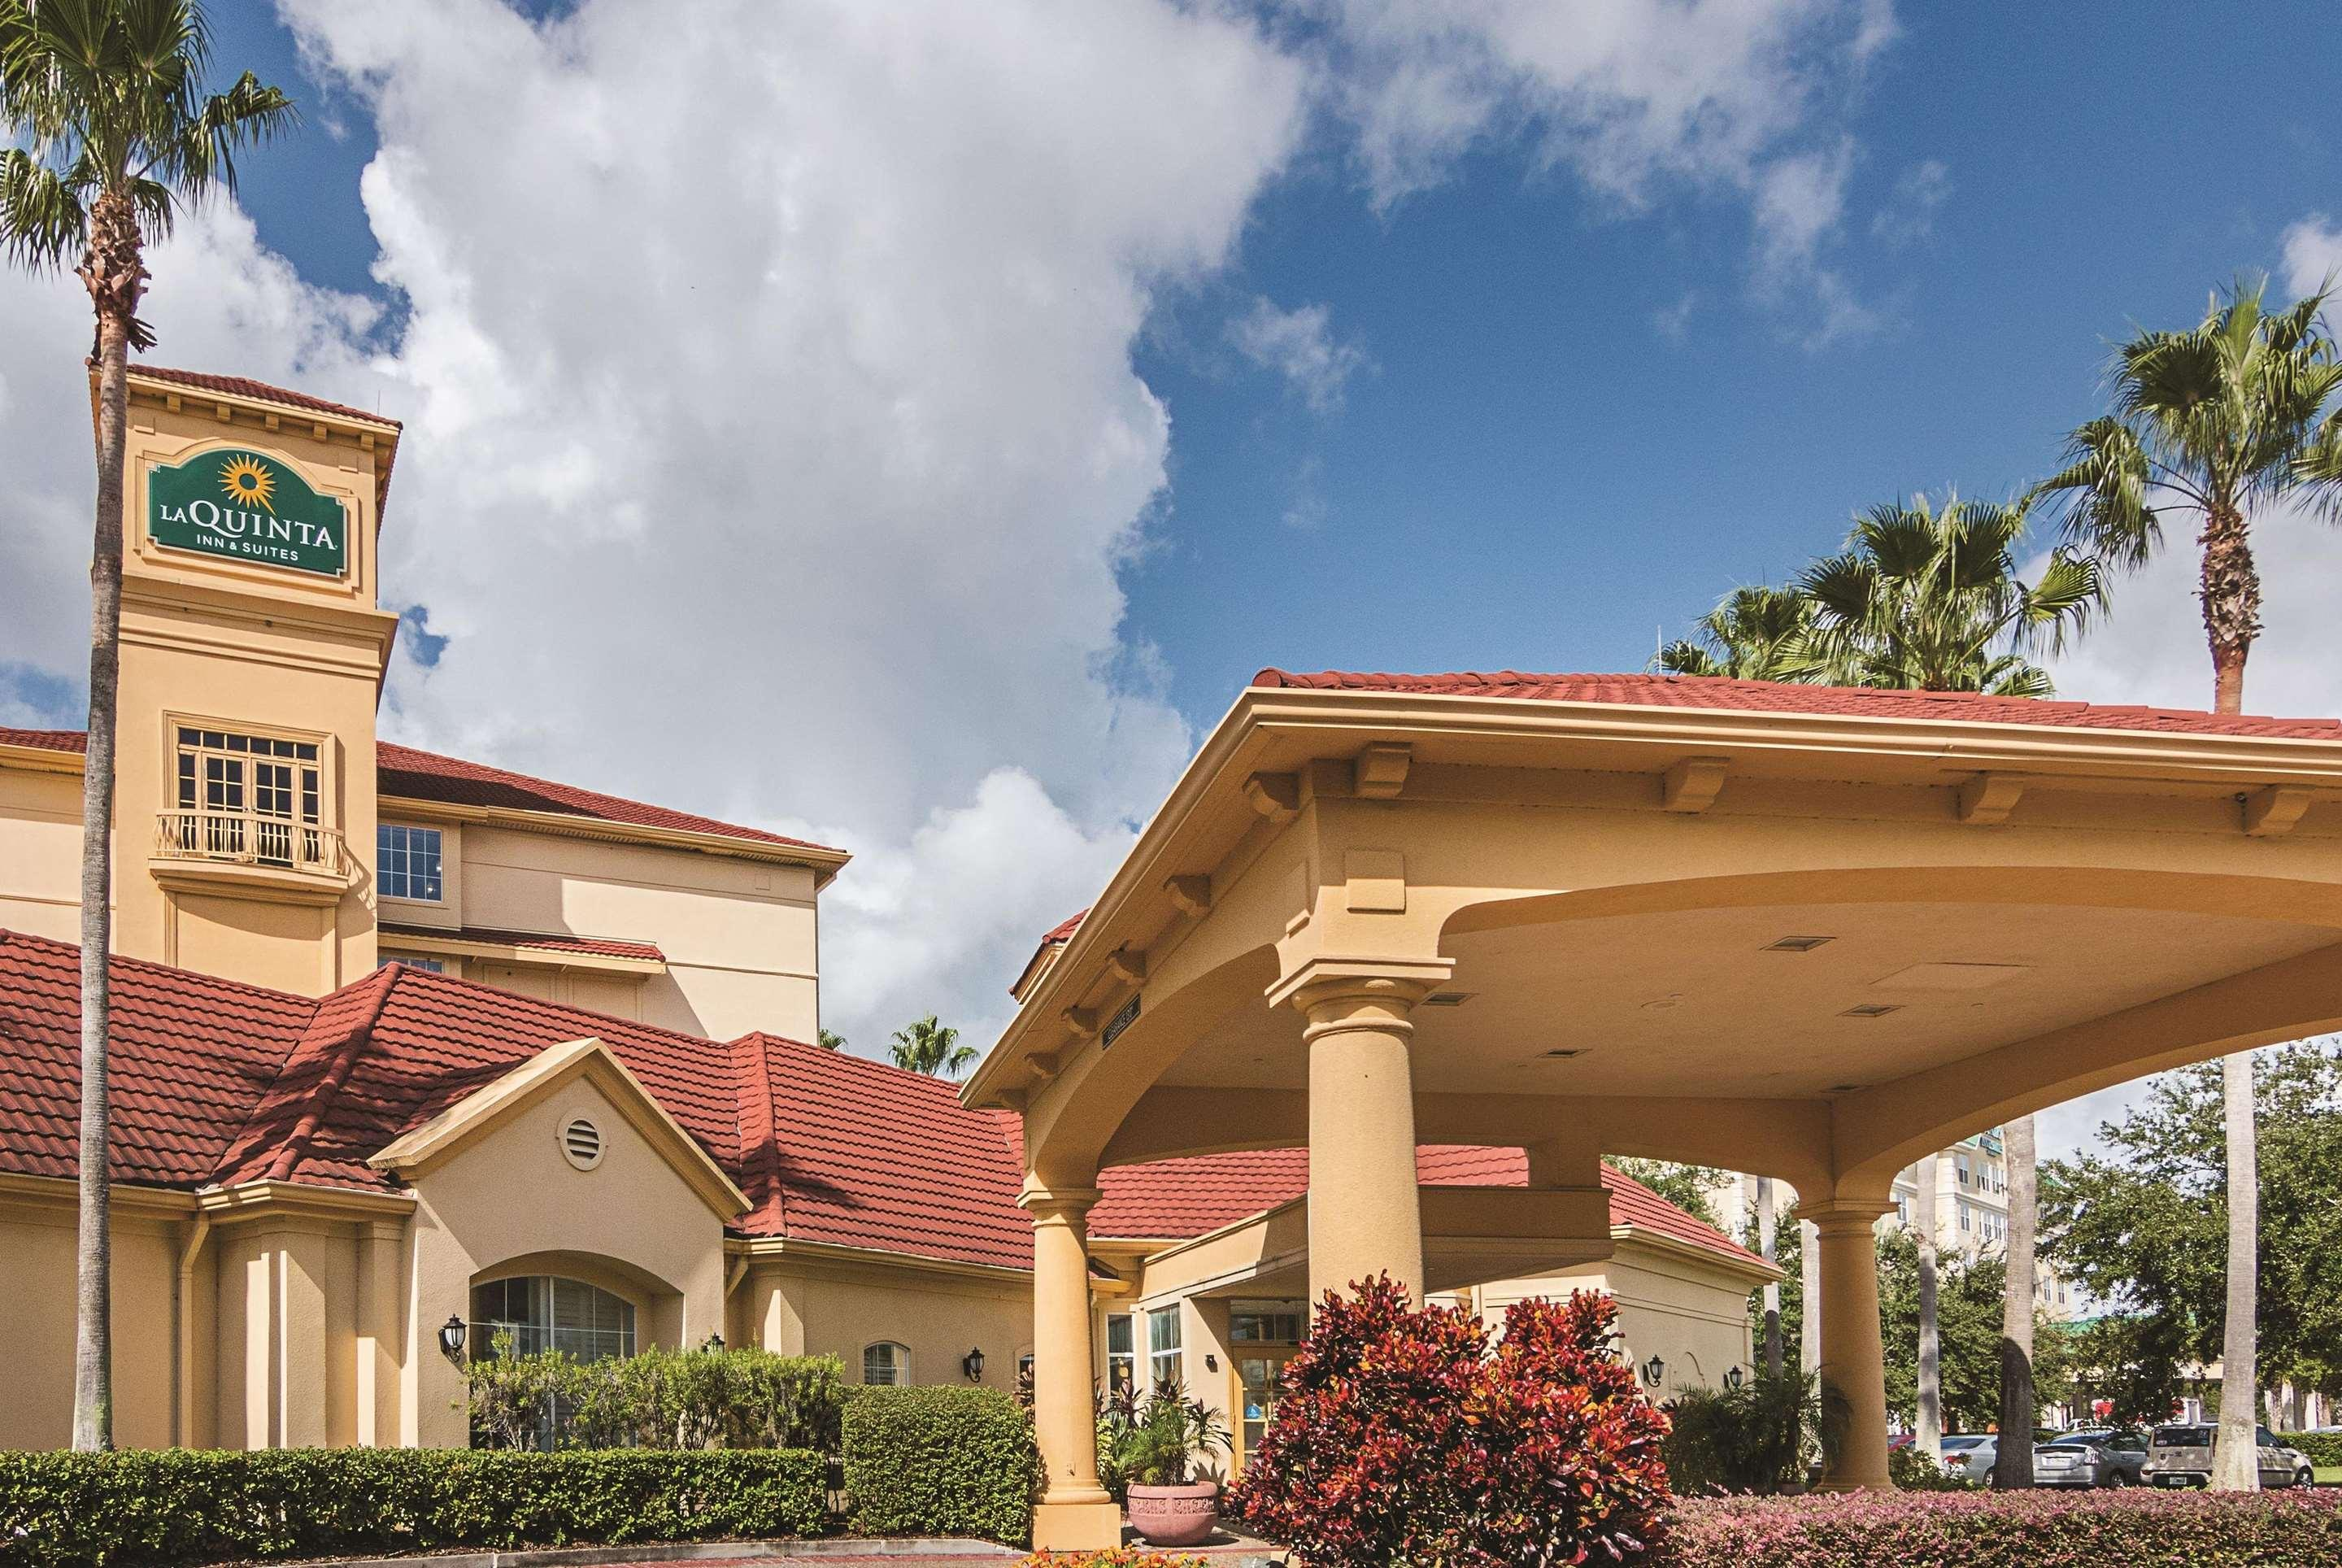 La Quinta Inn & Suites by Wyndham Orlando Airport North